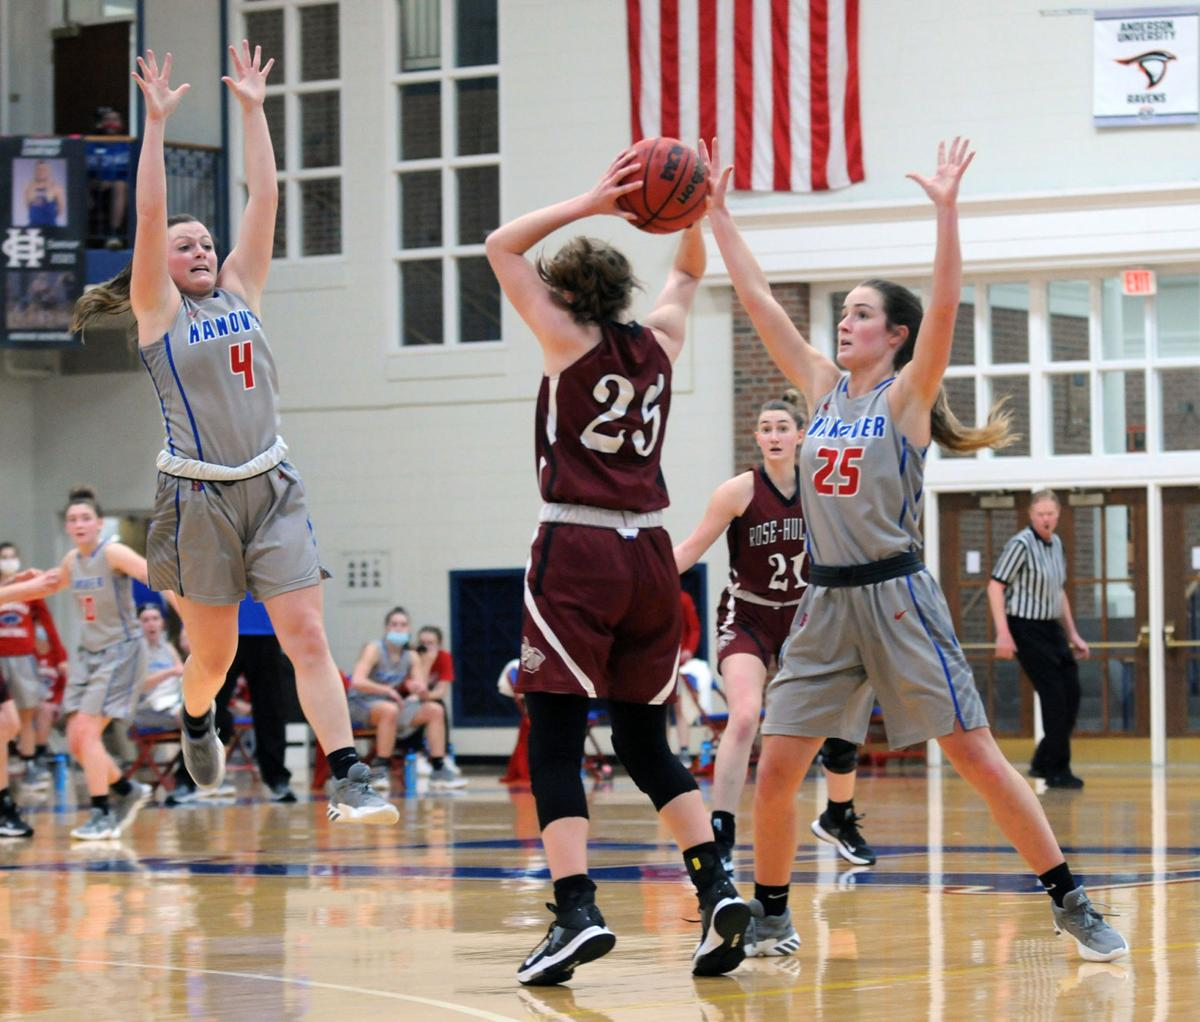 Hanover women open HCAC Tourney with 56-40 win over Rose | Sports | madisoncourier.com